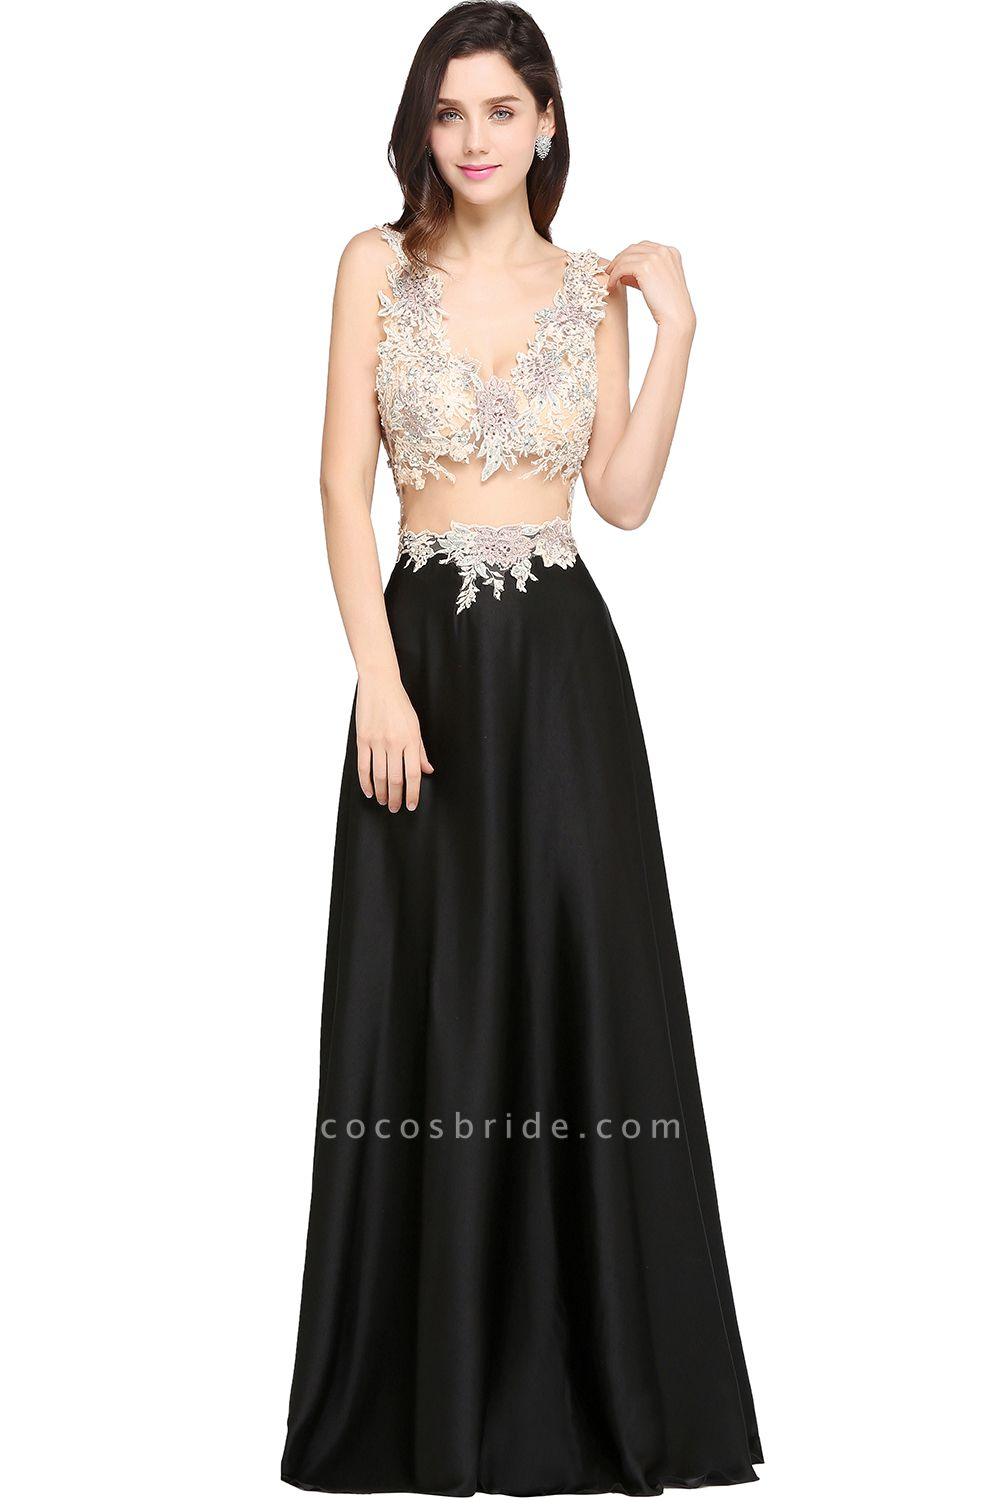 ARIELLE | A-line Floor Length Black Chiffon Evening Dresses with Appliques